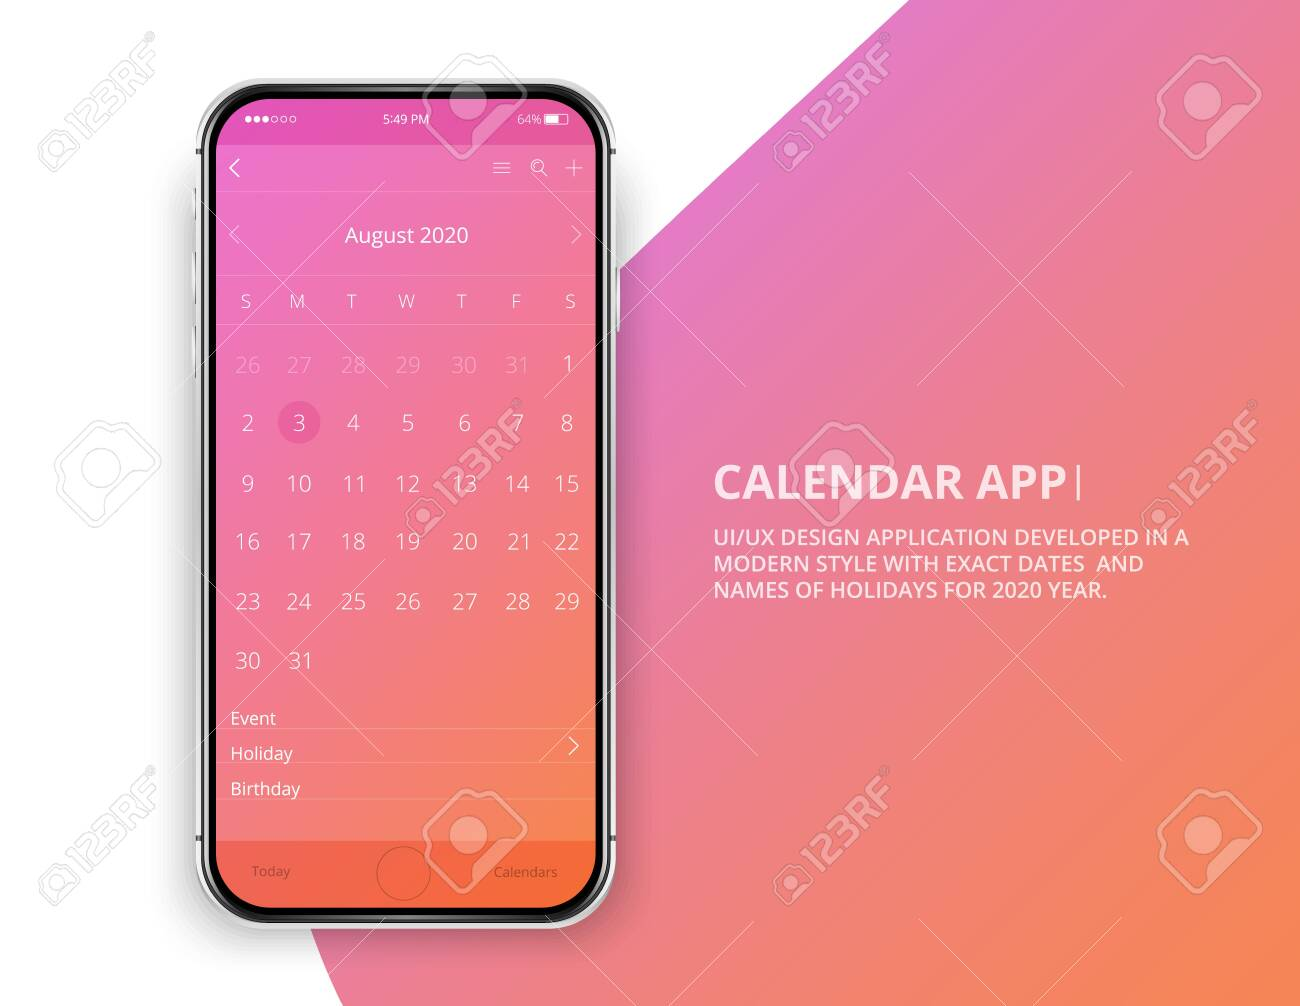 User Interface Design Mobile Calendar App Phone App Calendar Royalty Free Cliparts Vectors And Stock Illustration Image 132811020